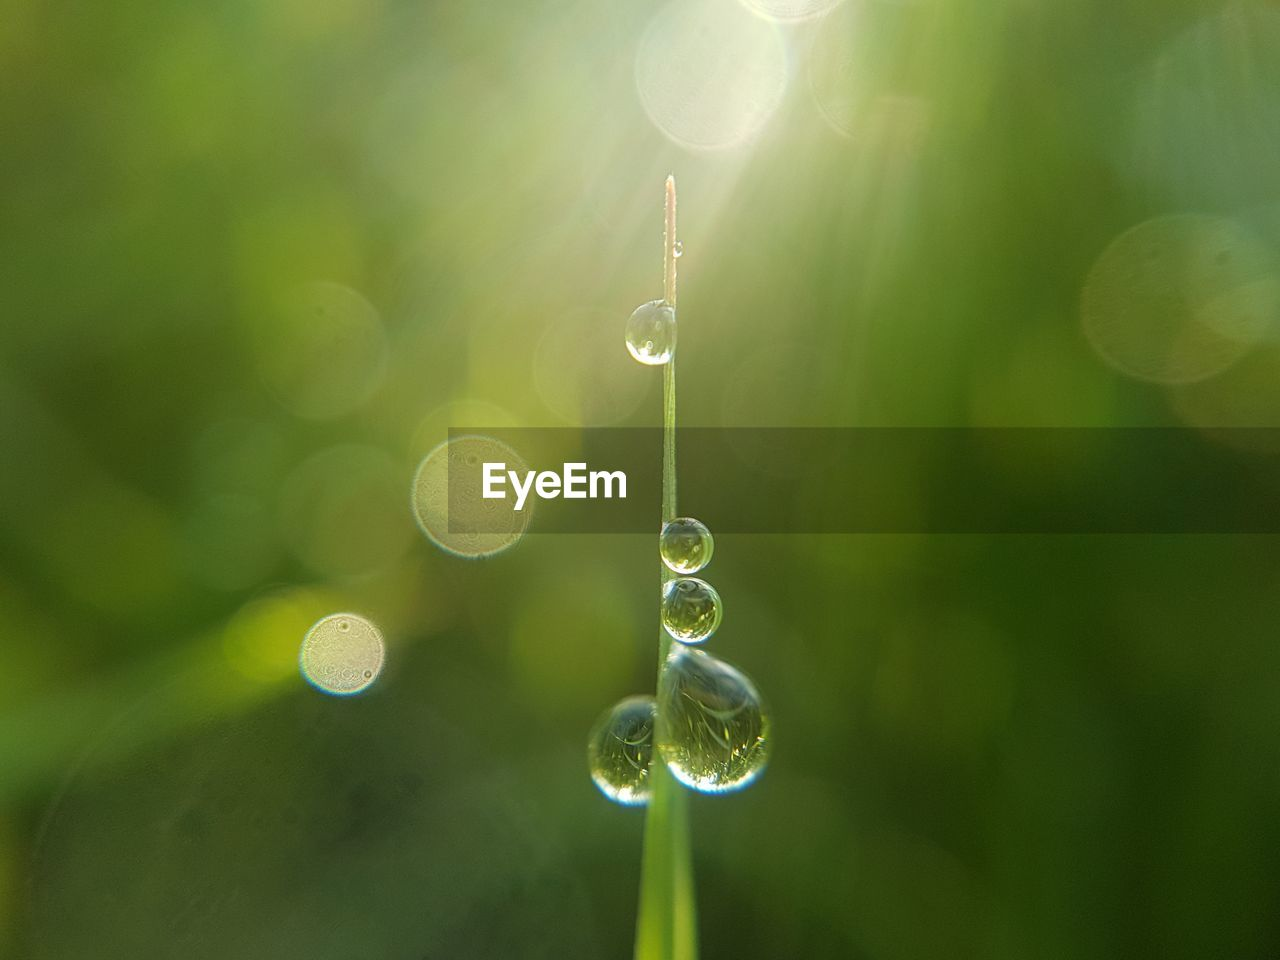 nature, close-up, green color, water, drop, no people, focus on foreground, growth, plant, beauty in nature, day, outdoors, selective focus, lens flare, mid-air, fragility, sunlight, freshness, vulnerability, purity, blade of grass